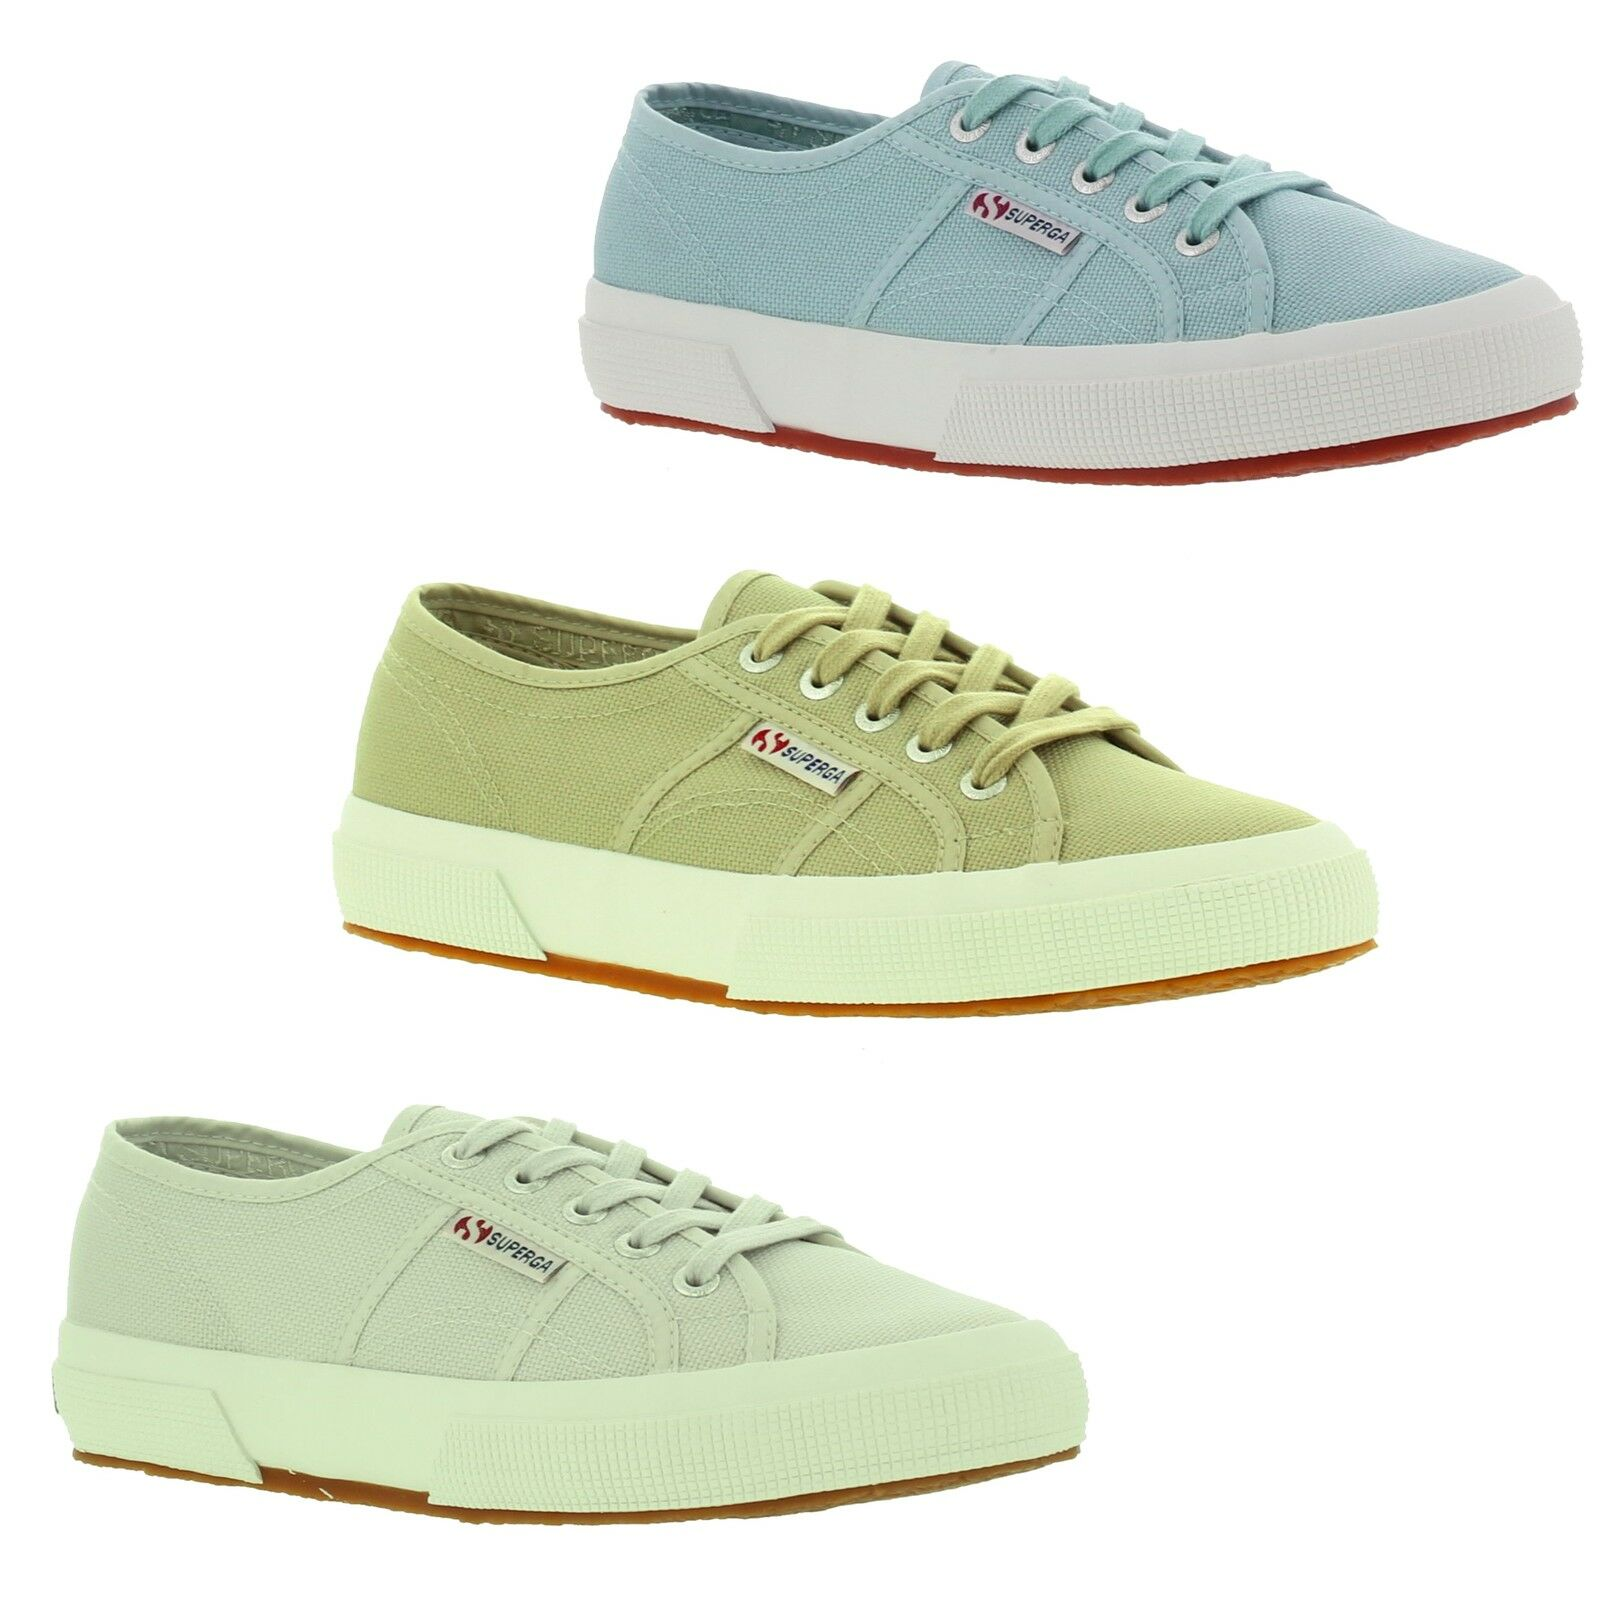 Superga 2750 Cotu Womens Canvas Blue Grey Beige Trainers Shoes Size